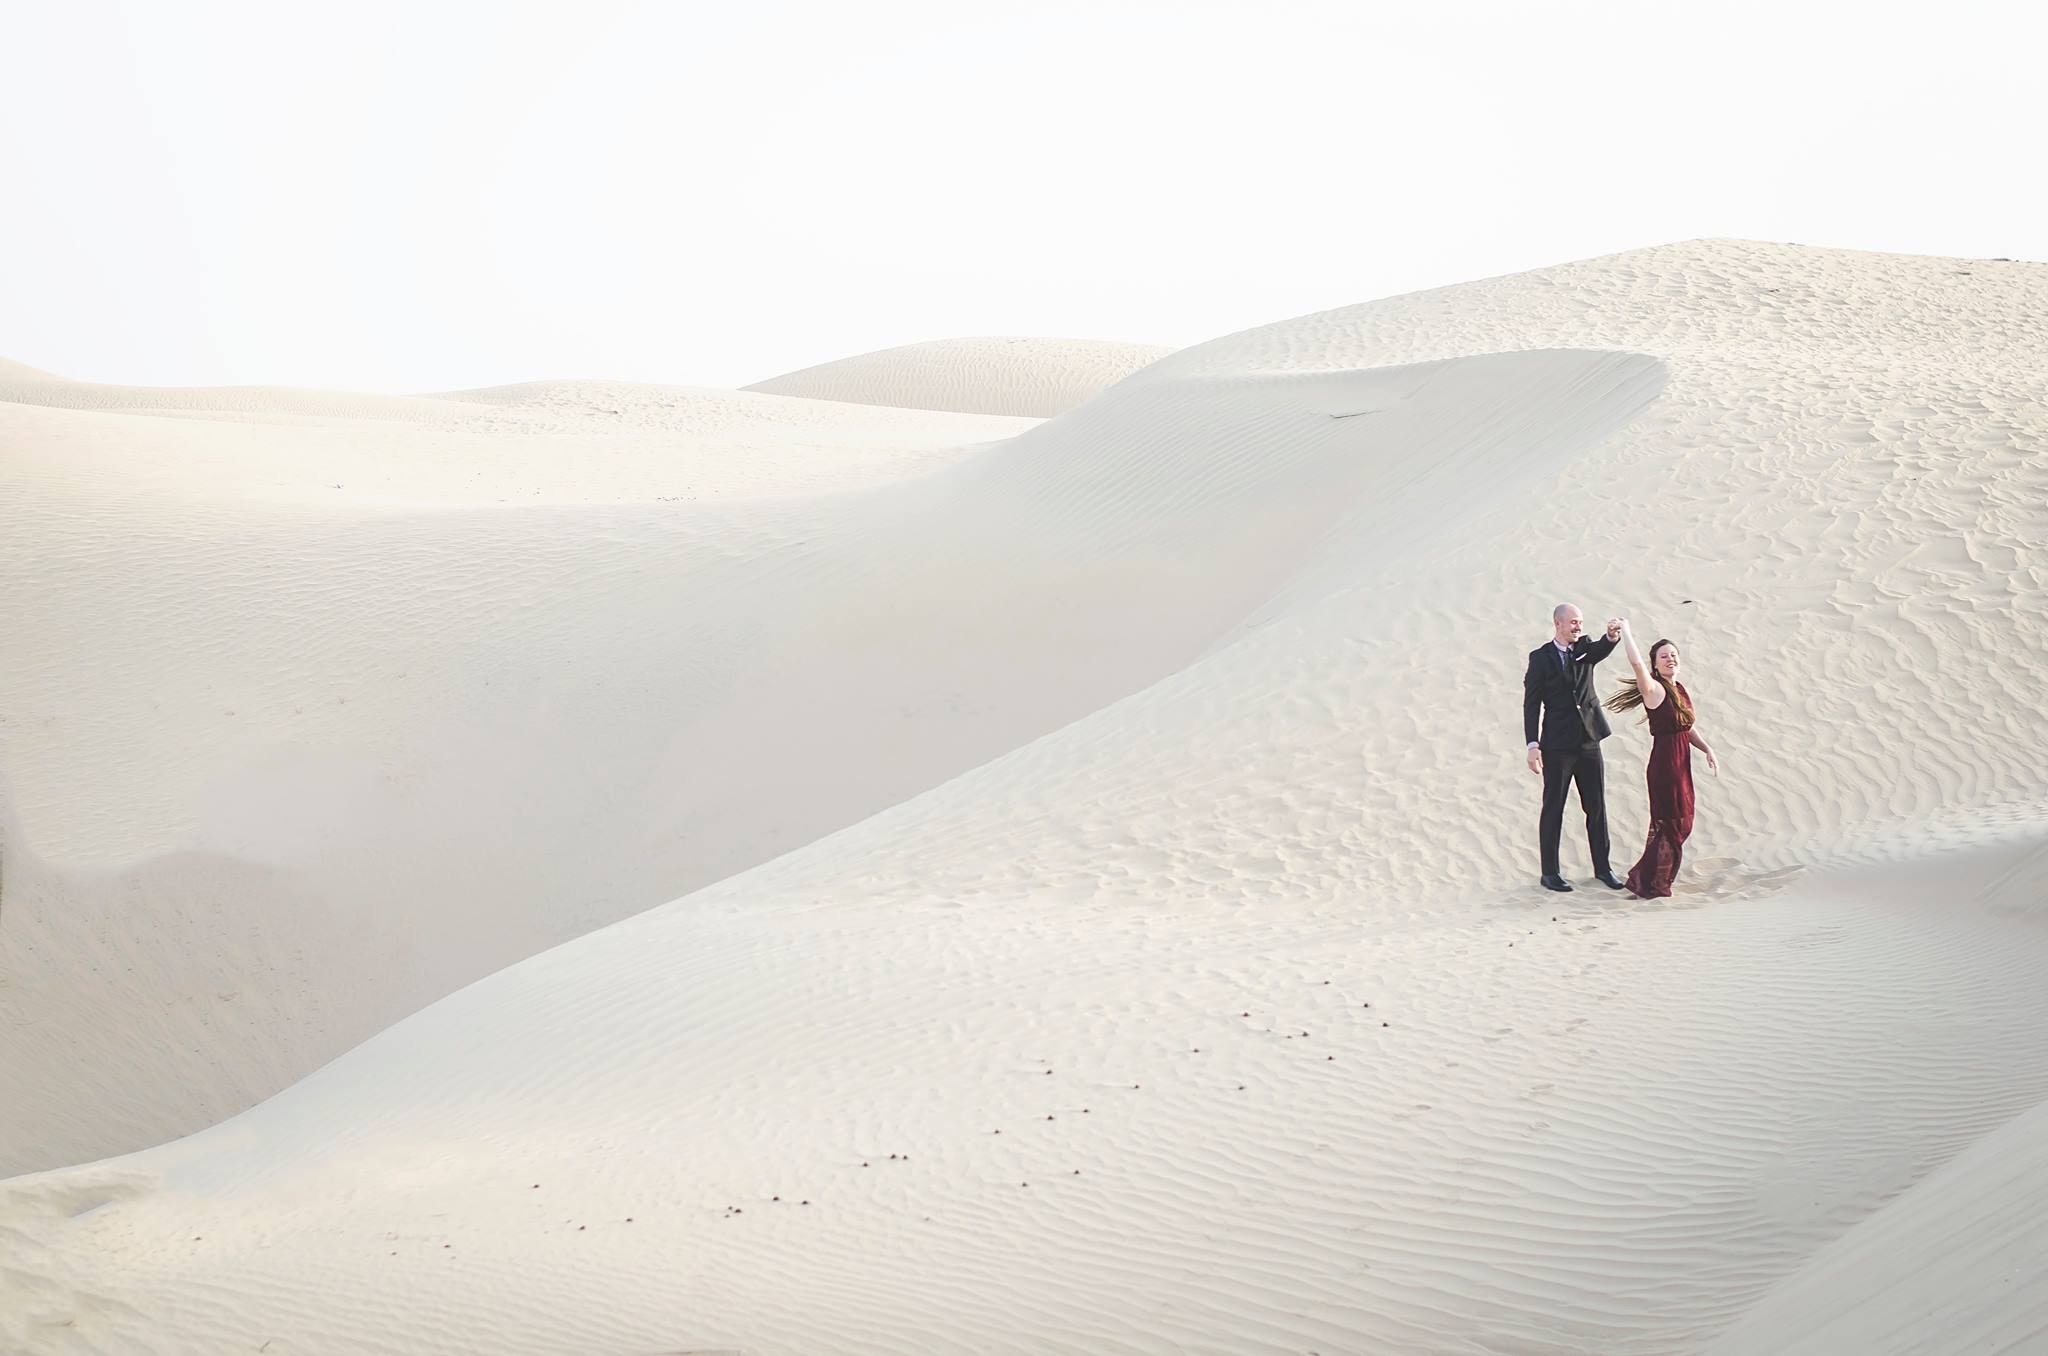 Dan and Di engagement photos while teaching in the UAE